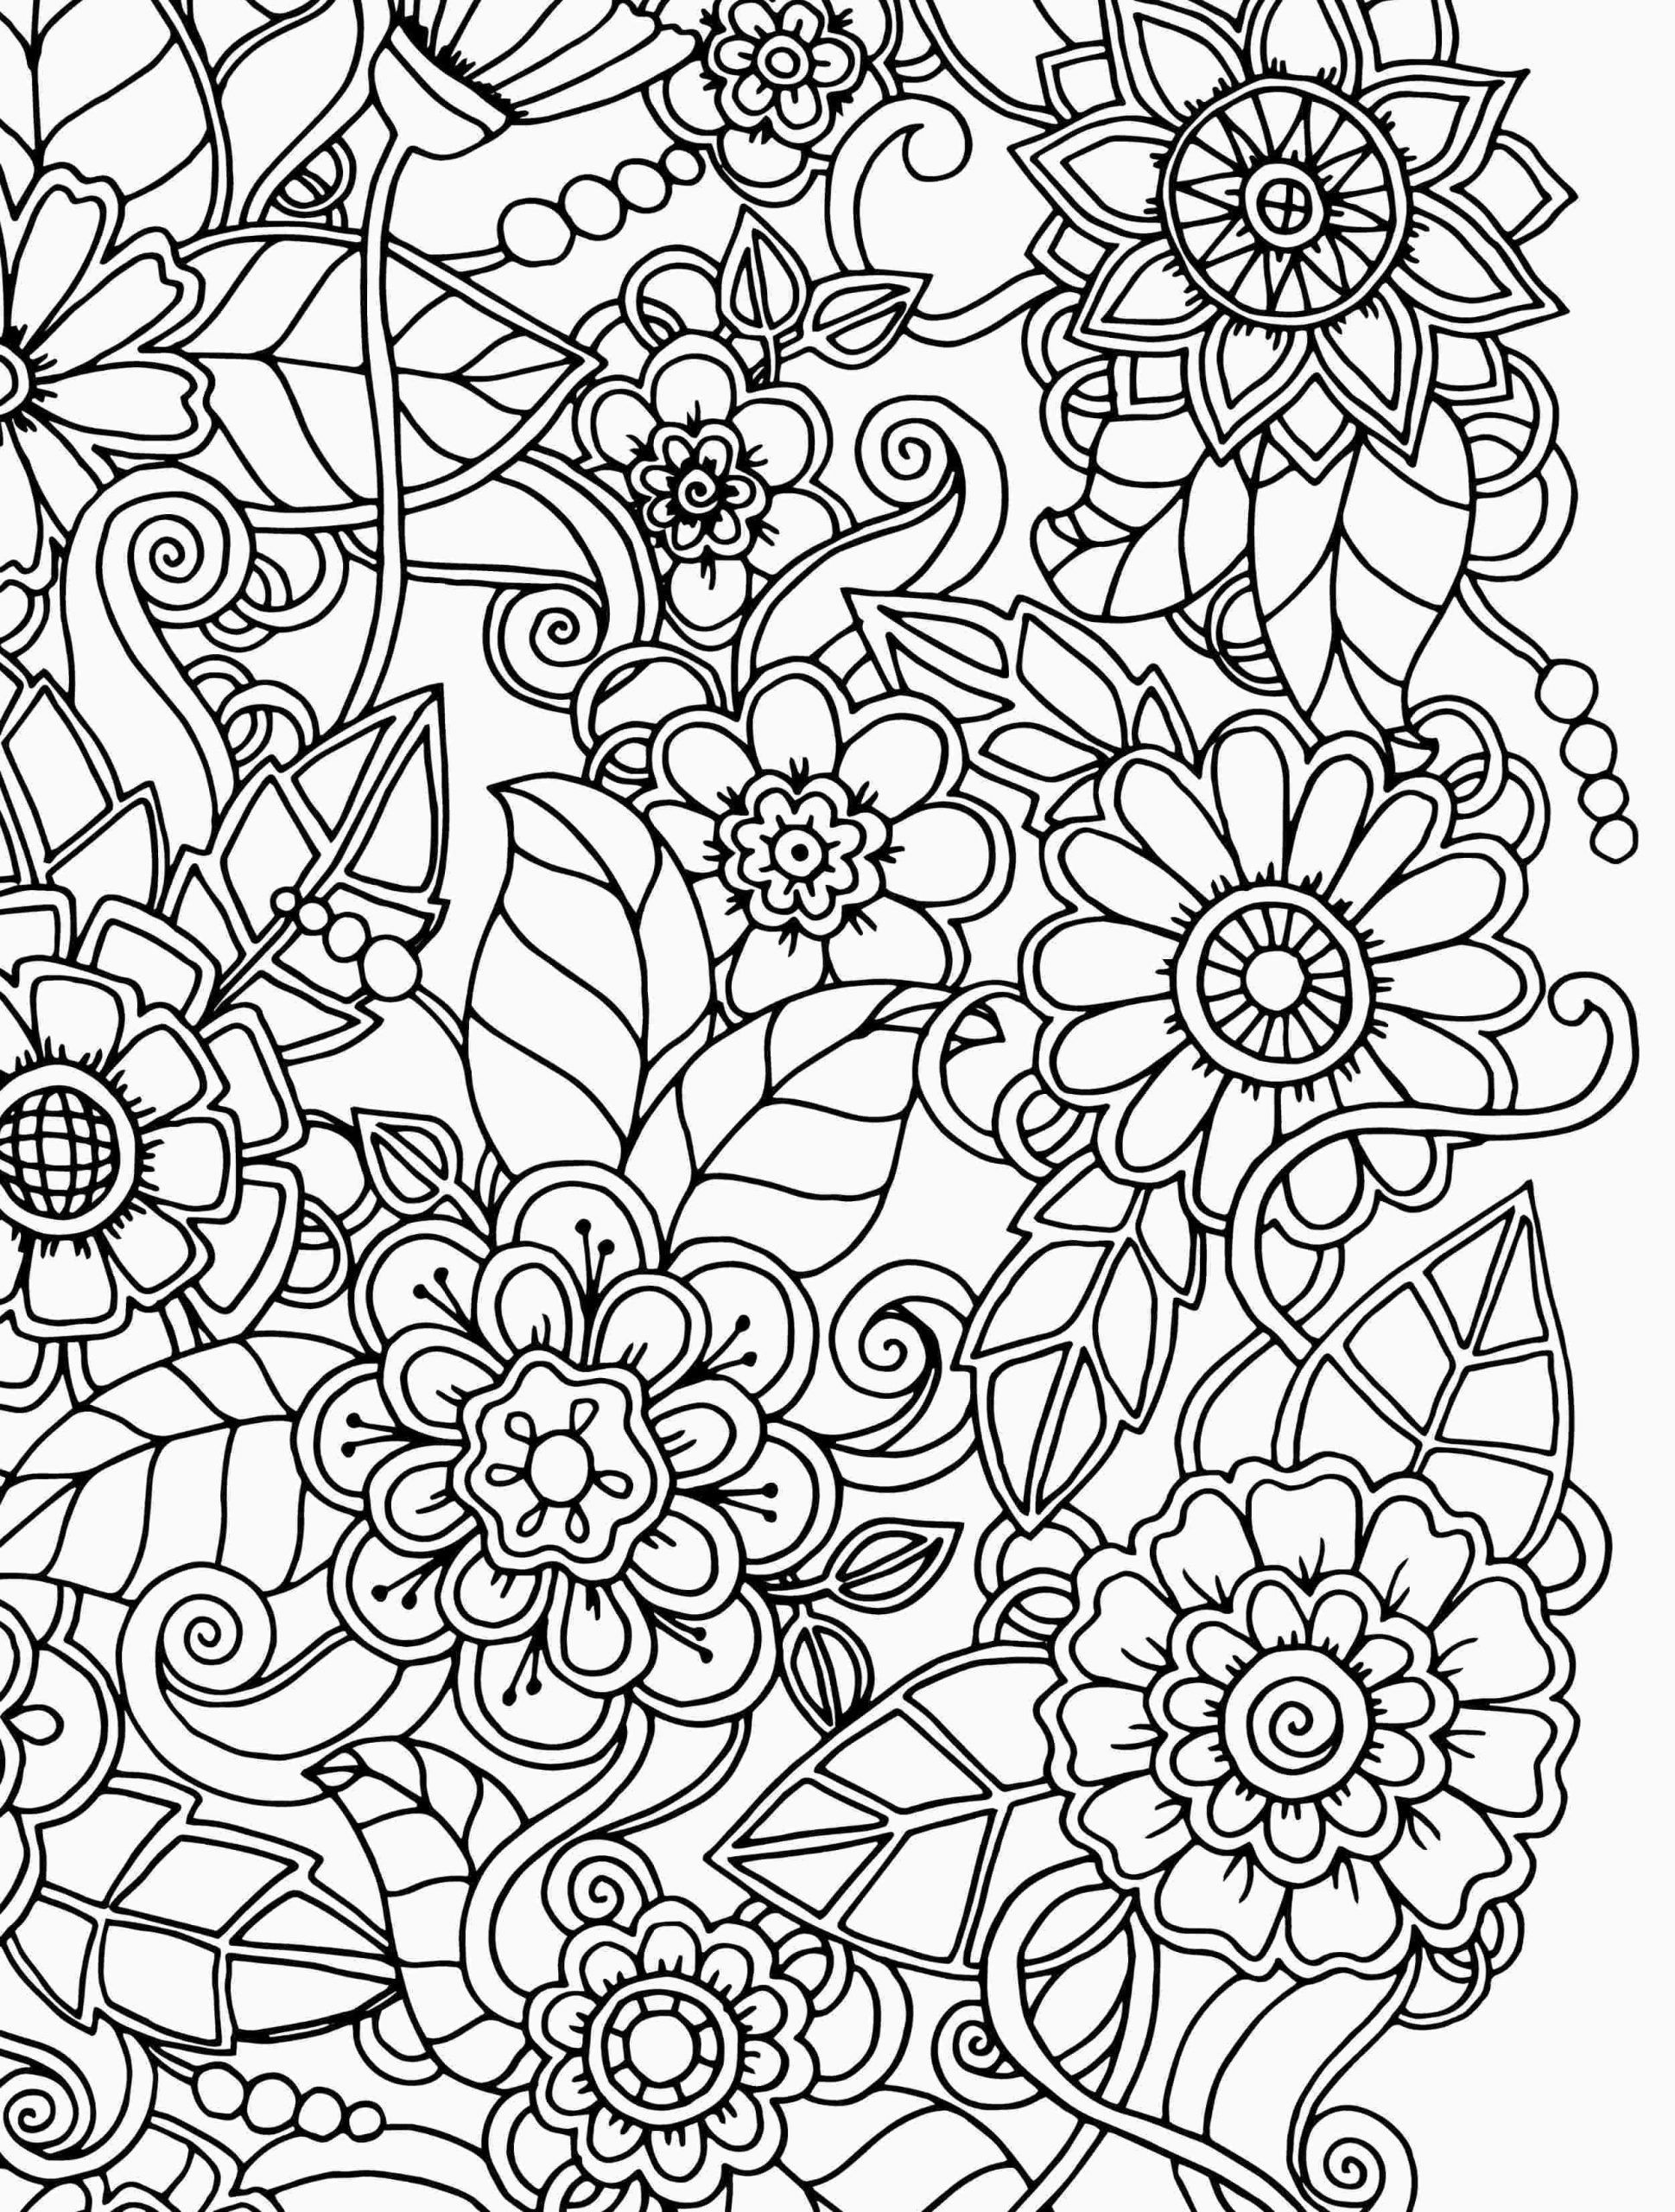 Coloring Books For Dementia Patients Free Colouring Pages For Dementia Patients Maleboger Mandala Tegning